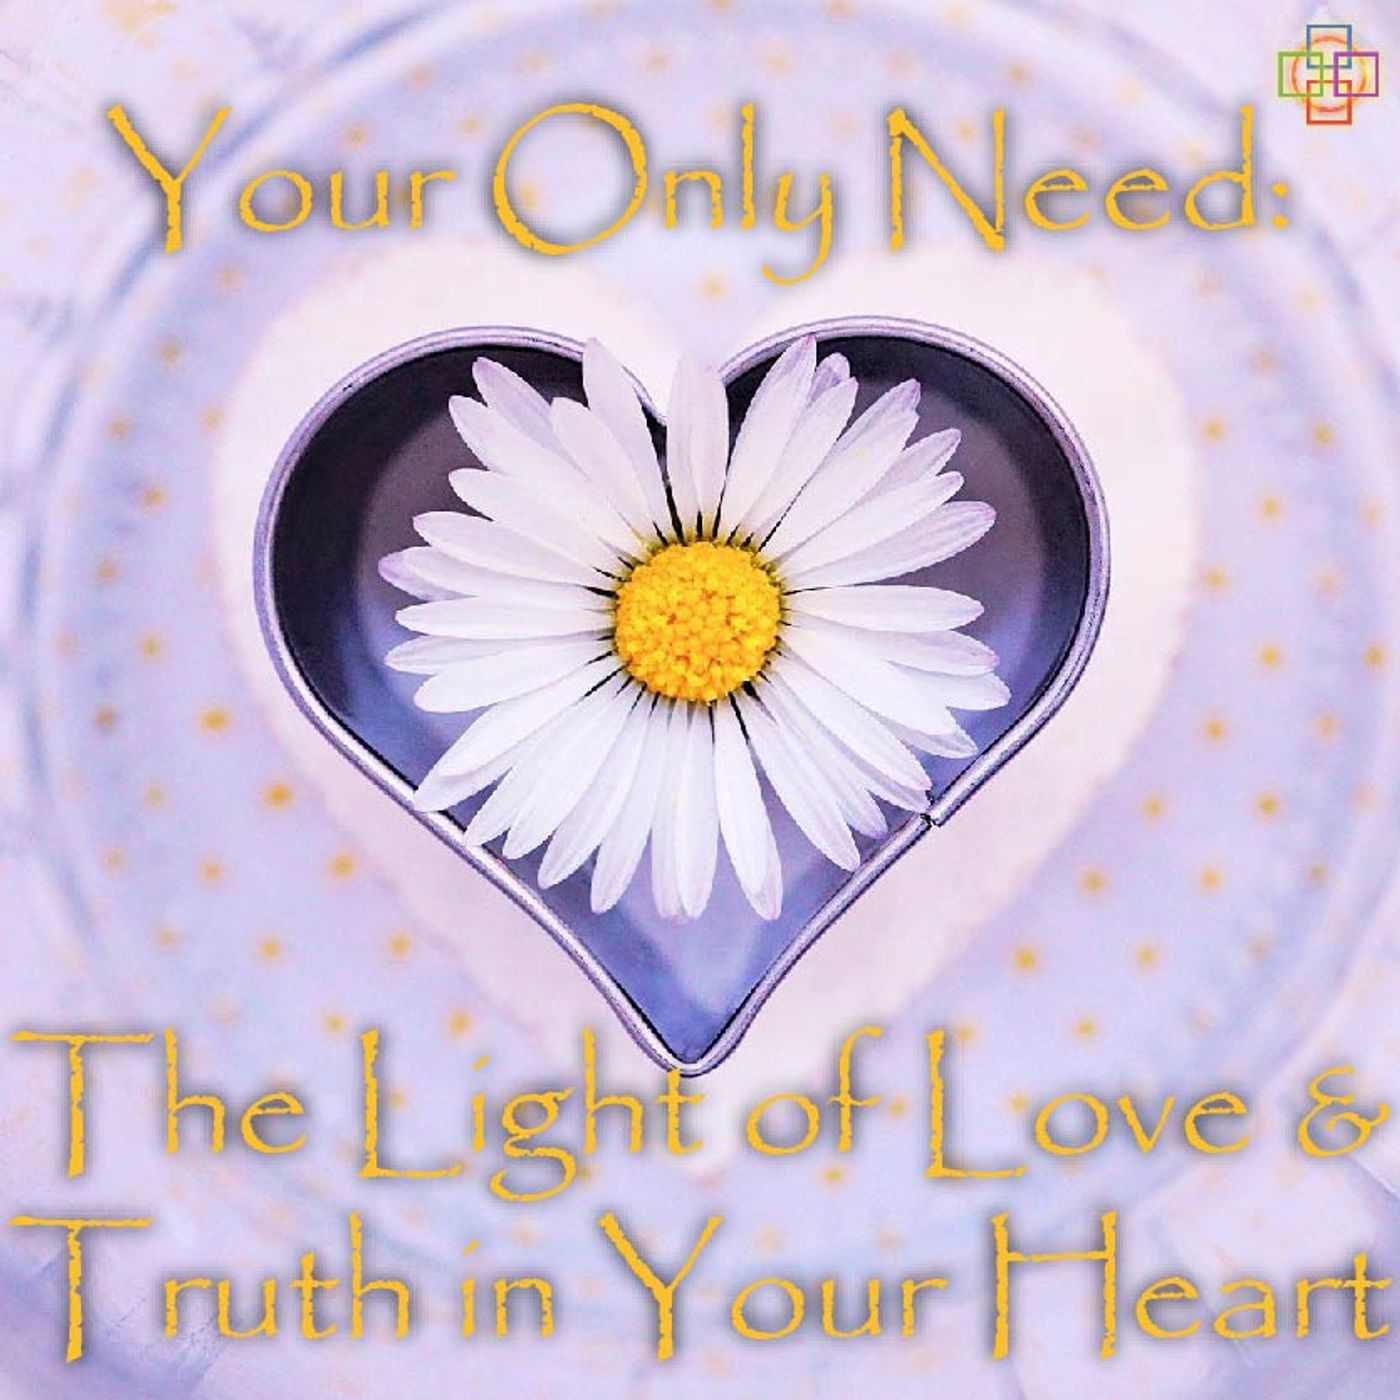 Your Only Need: The Light of Love & Truth in Your Heart